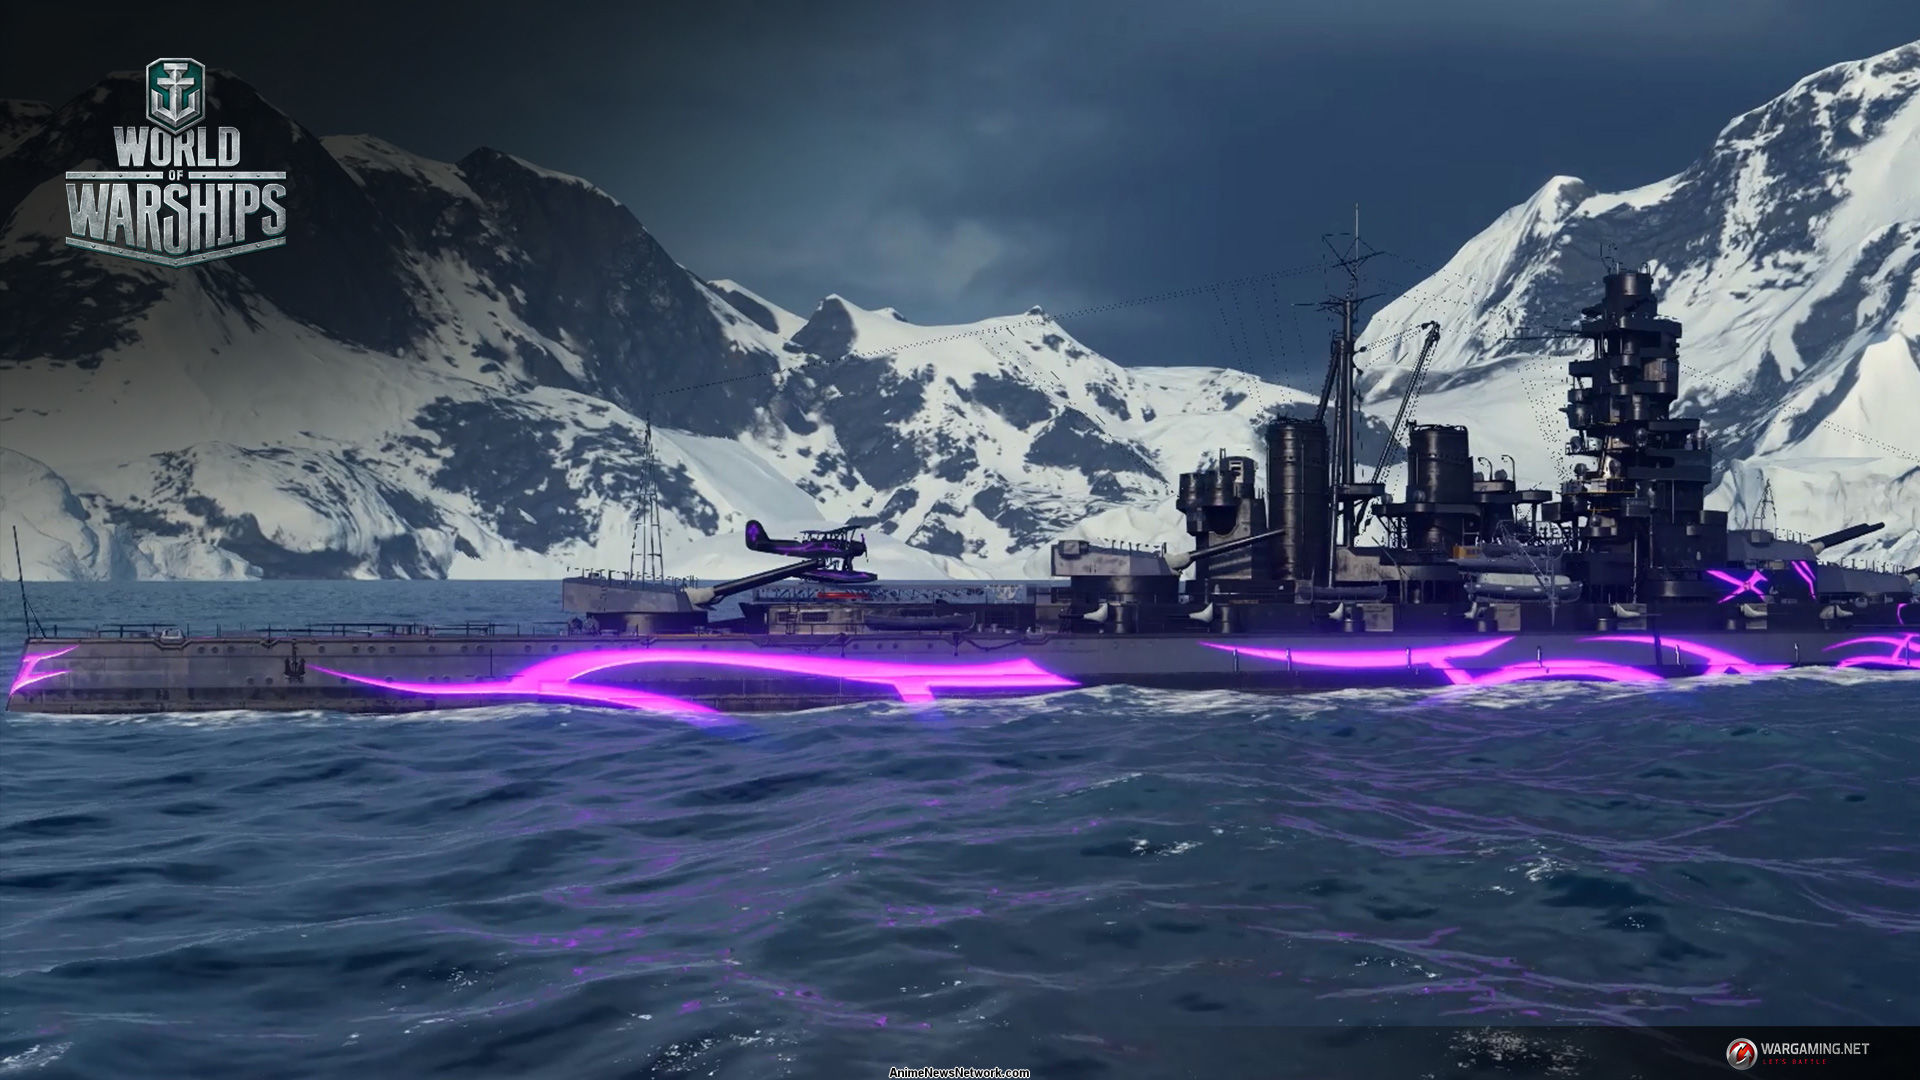 World Of Warships Arpeggio Of Blue Steel Collaboration Teased In